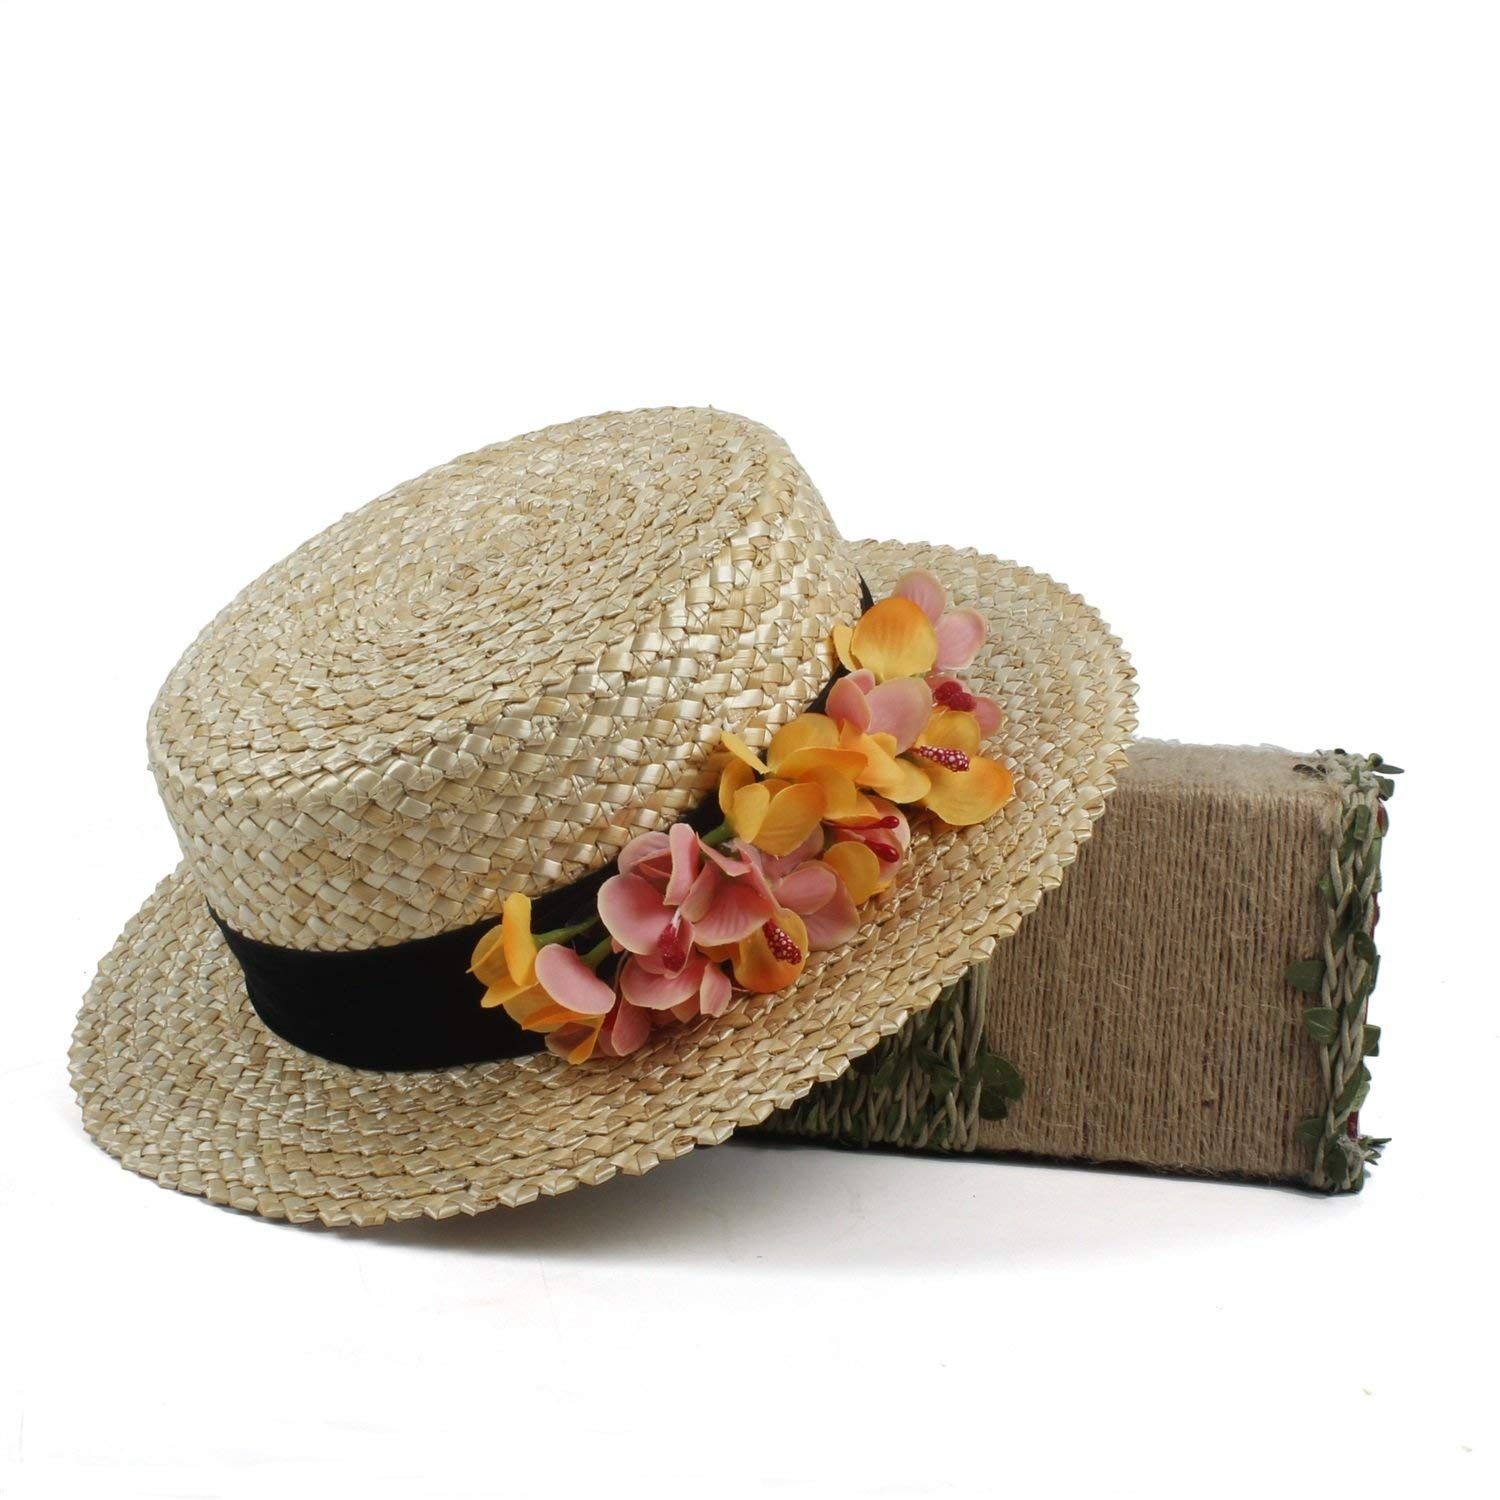 589ec0c814ebd Straw hat. Flower boater hat.